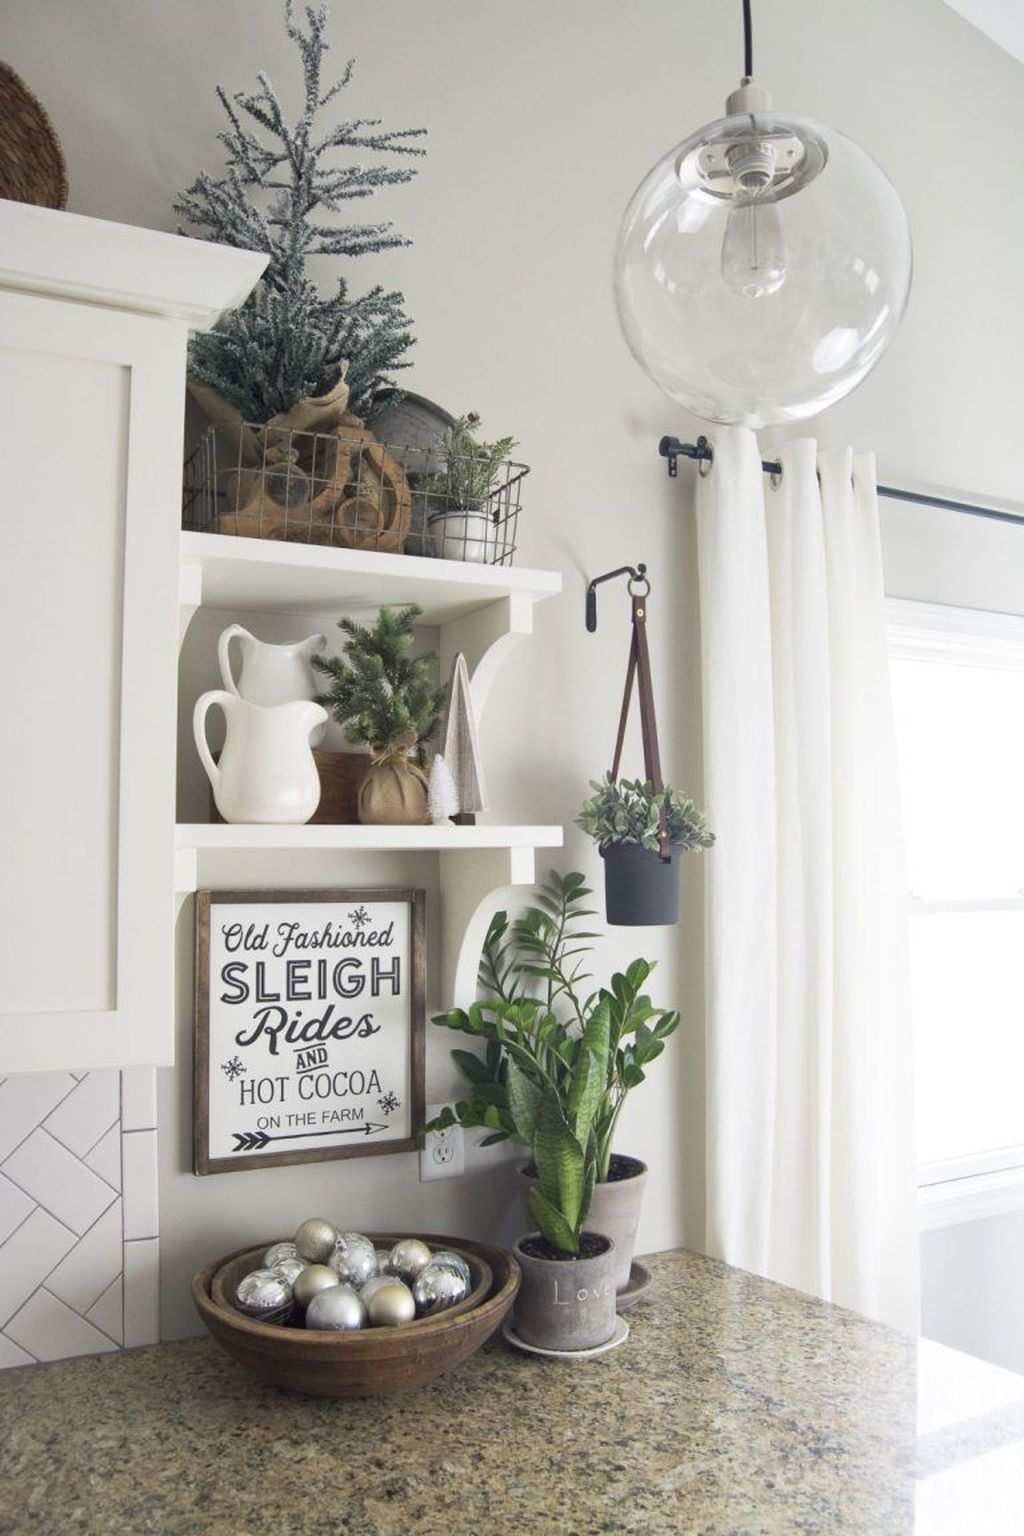 31 Awesome Winter Kitchen Decorations You Never Seen